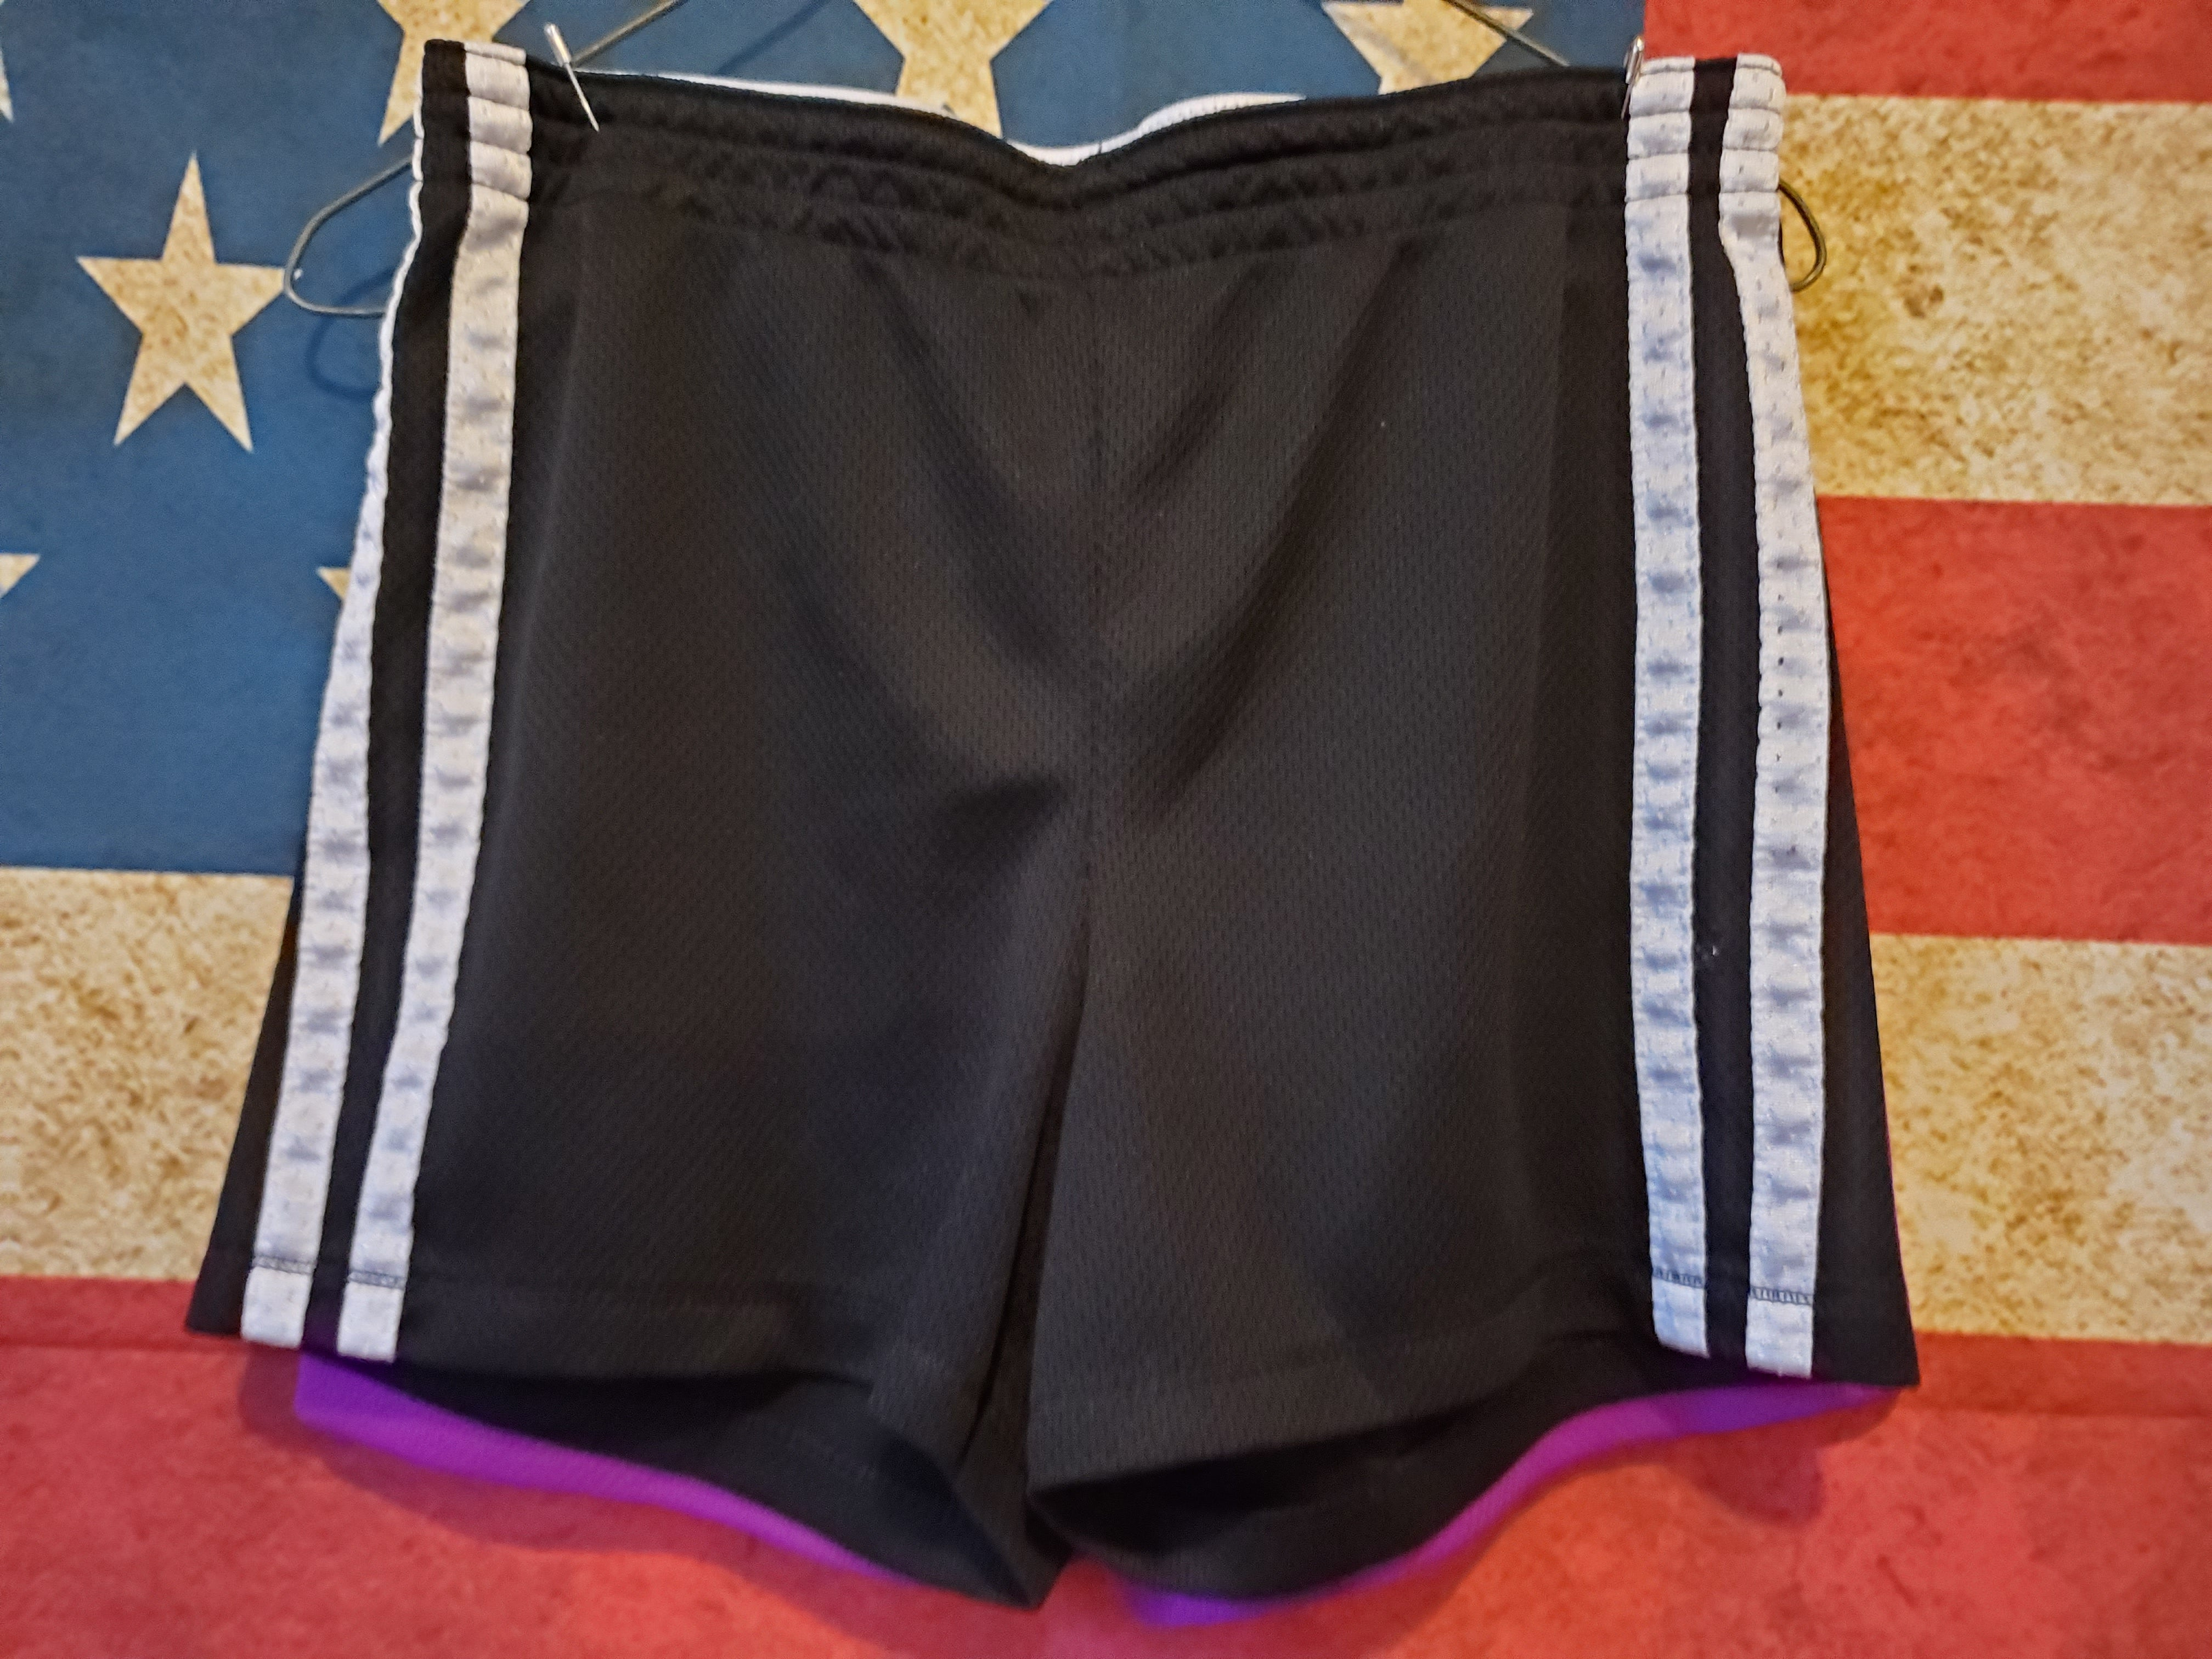 2 PAIR FADED GLORY SIZE 7/8 shorts black & purple